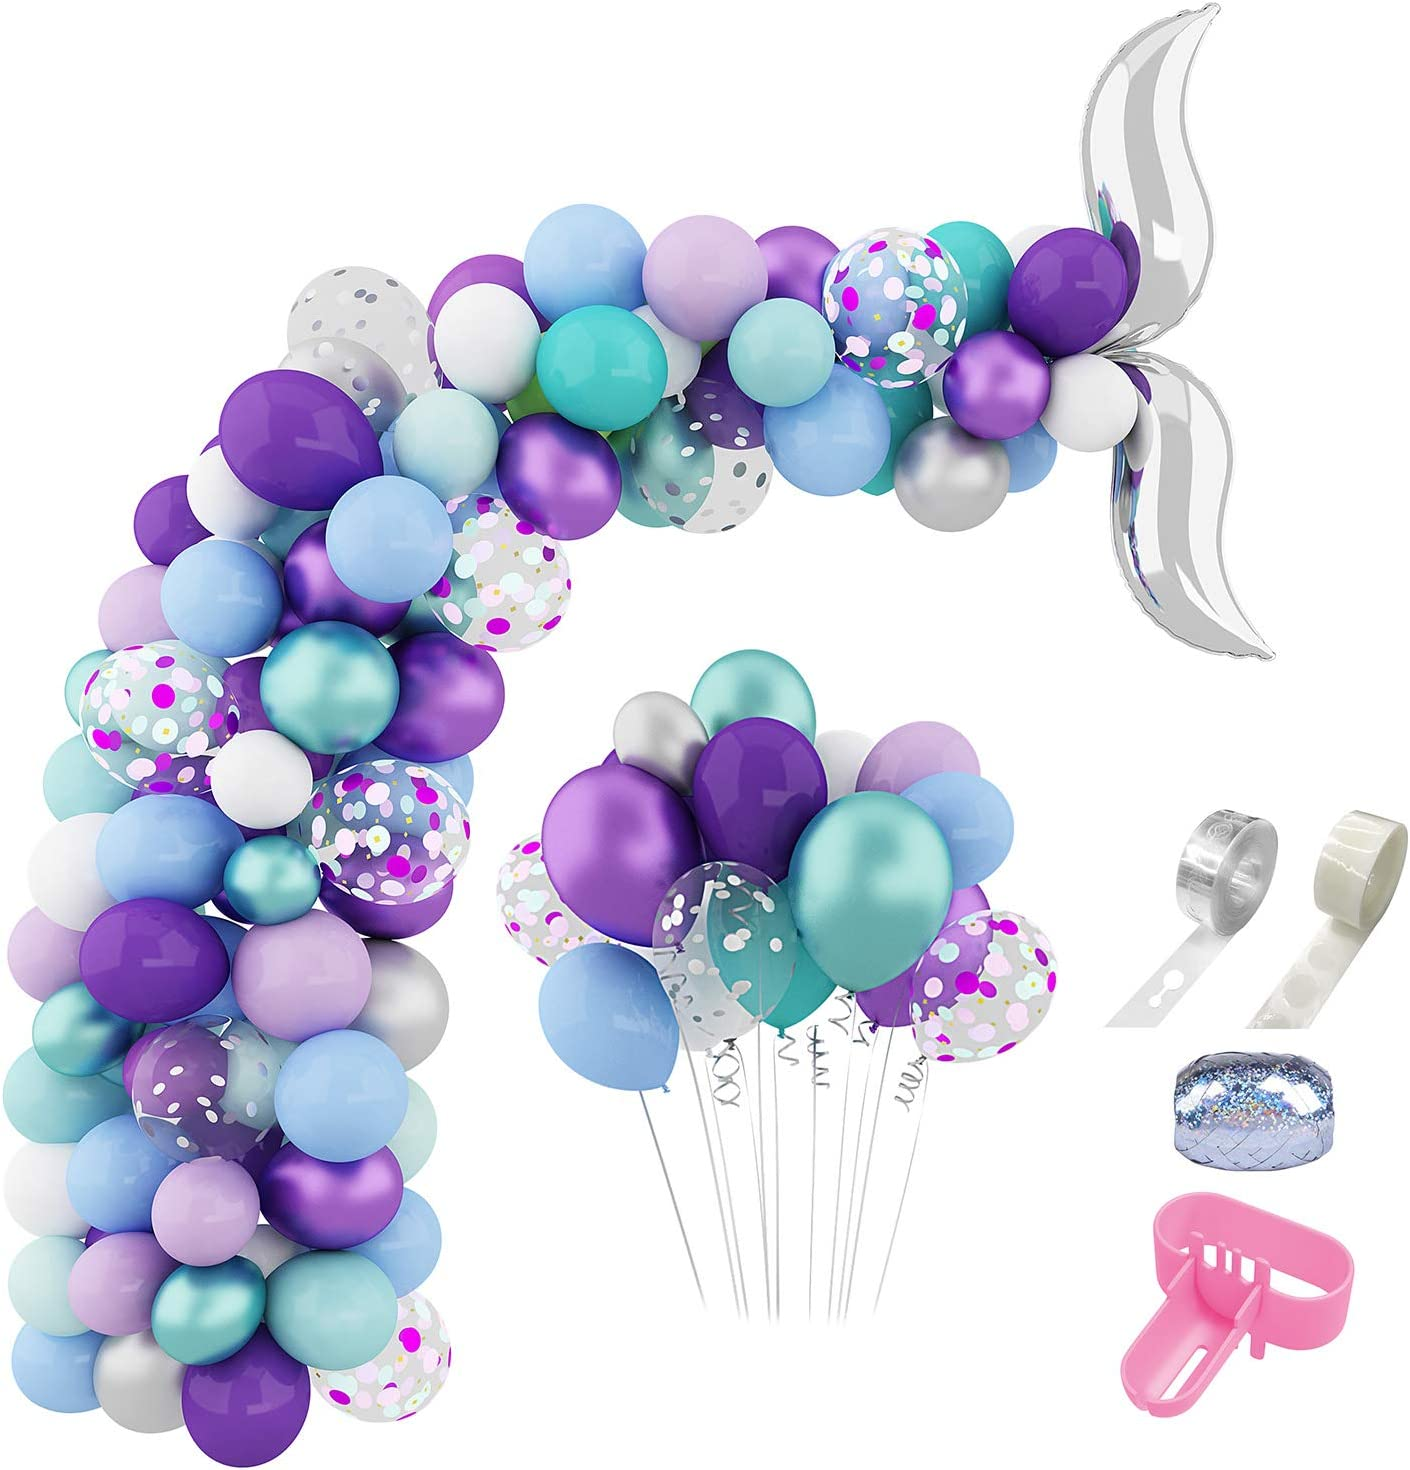 230 Pcs Mermaid Tail Balloons Arch Garland Kit 12'' 10'' 5'' Green Purple Metallic Confetti Pink Blue White Latex Balloons Set for Mermaid Theme Birthday Party Supplies Under the Sea Party Decorations with Tying Tool, Balloon Strip, Glue Points & Ribbon